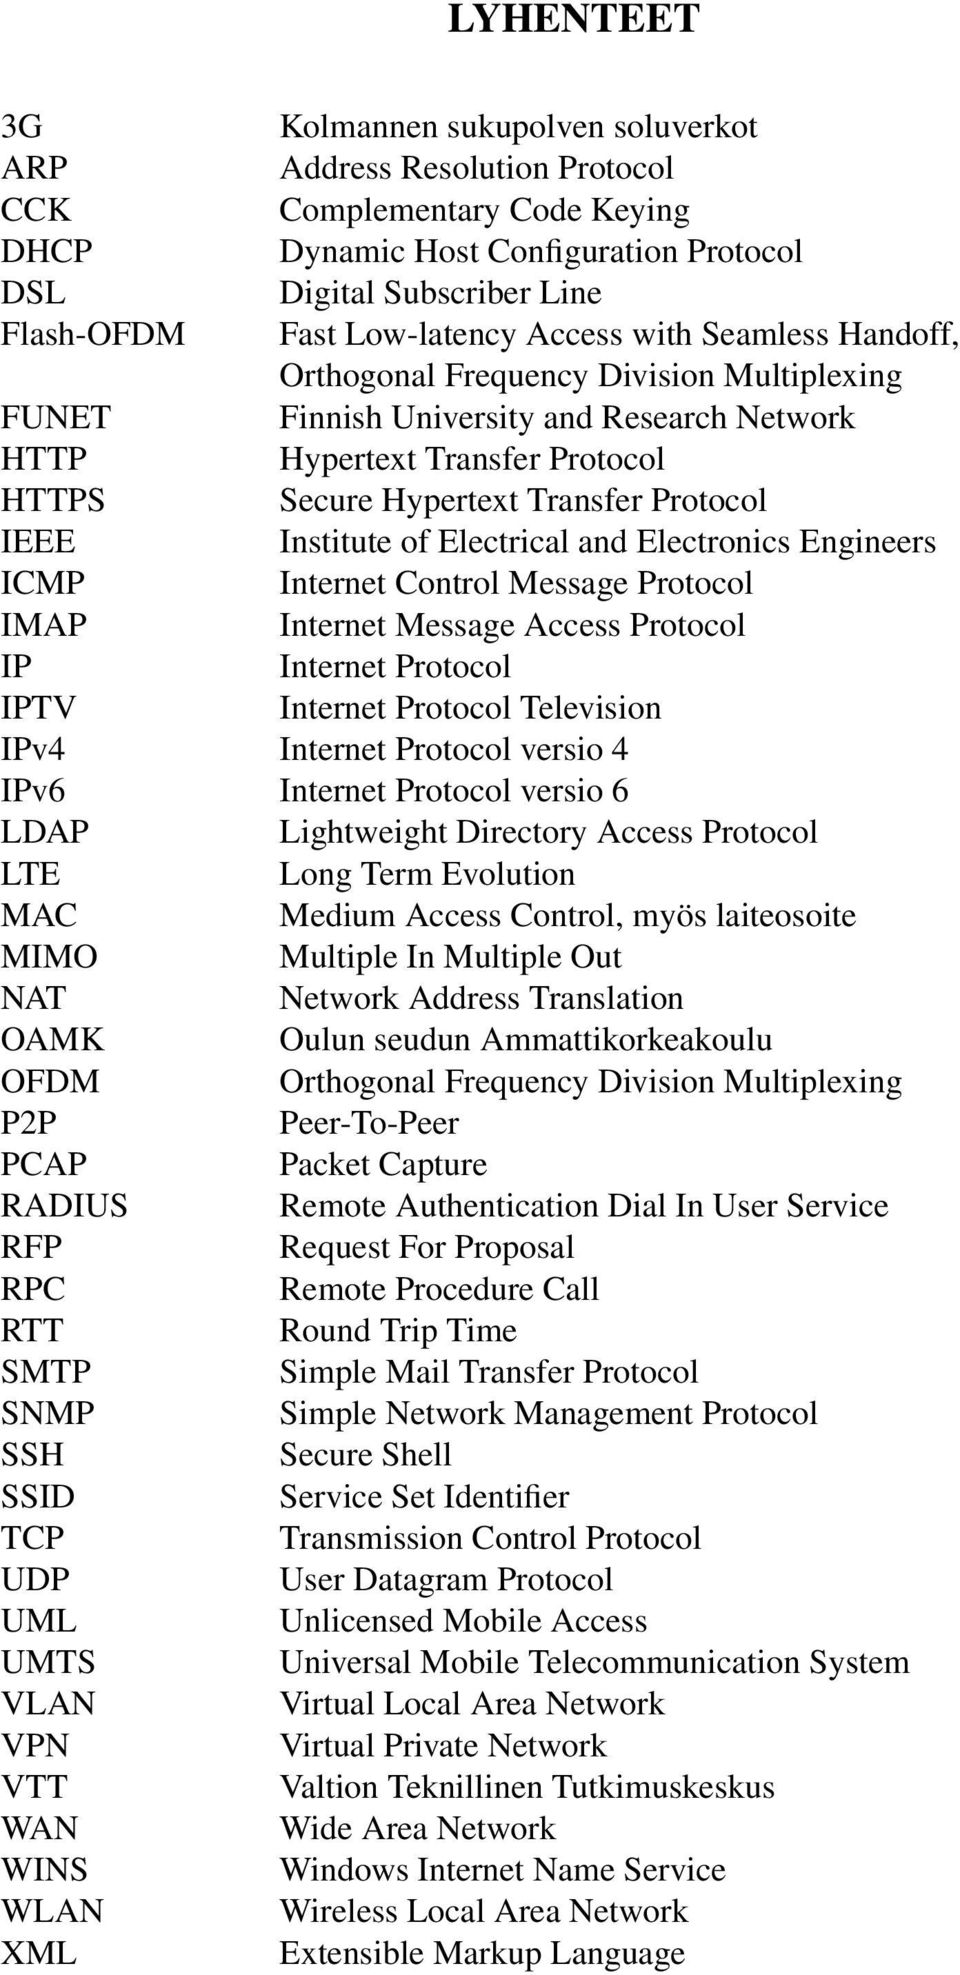 Protocol IEEE Institute of Electrical and Electronics Engineers ICMP Internet Control Message Protocol IMAP Internet Message Access Protocol IP Internet Protocol IPTV Internet Protocol Television